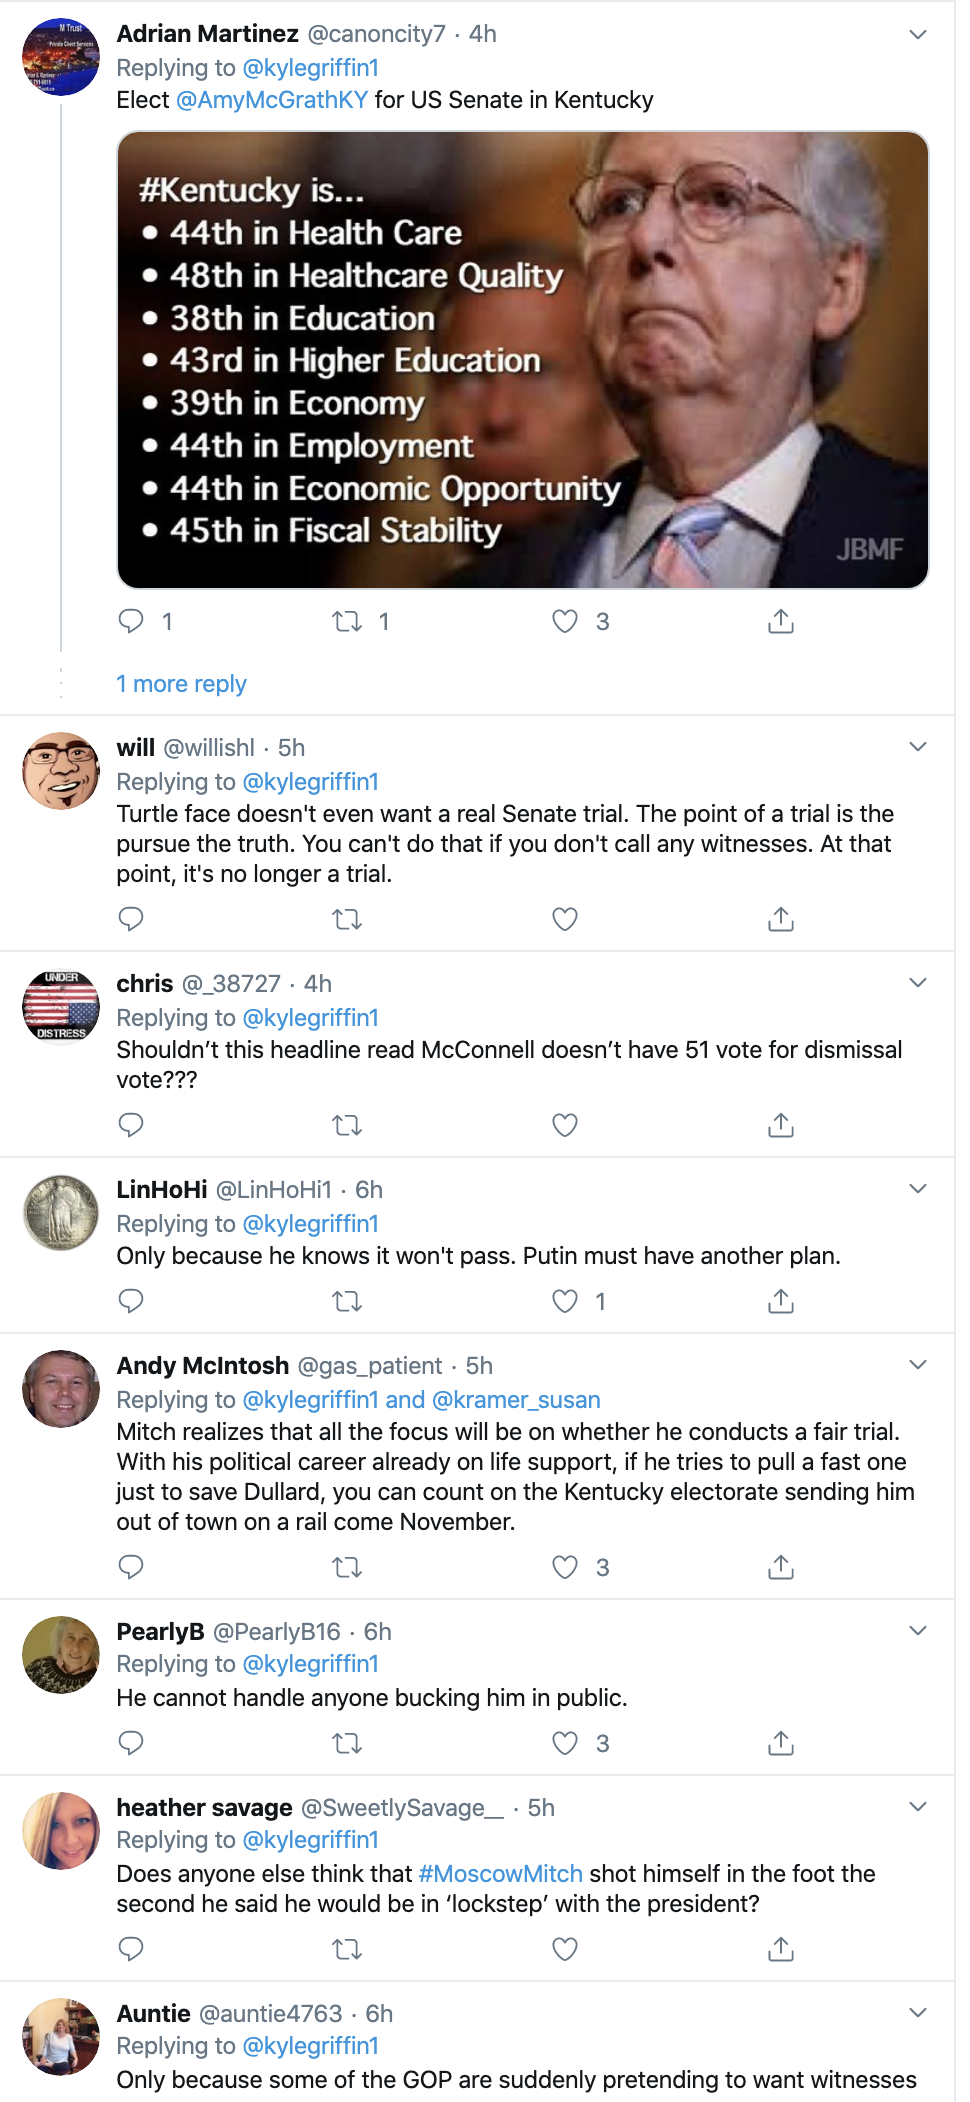 Screen-Shot-2020-01-14-at-2.43.22-PM McConnell Makes Tuesday Impeachment Announcement Donald Trump Featured Impeachment Investigation Top Stories